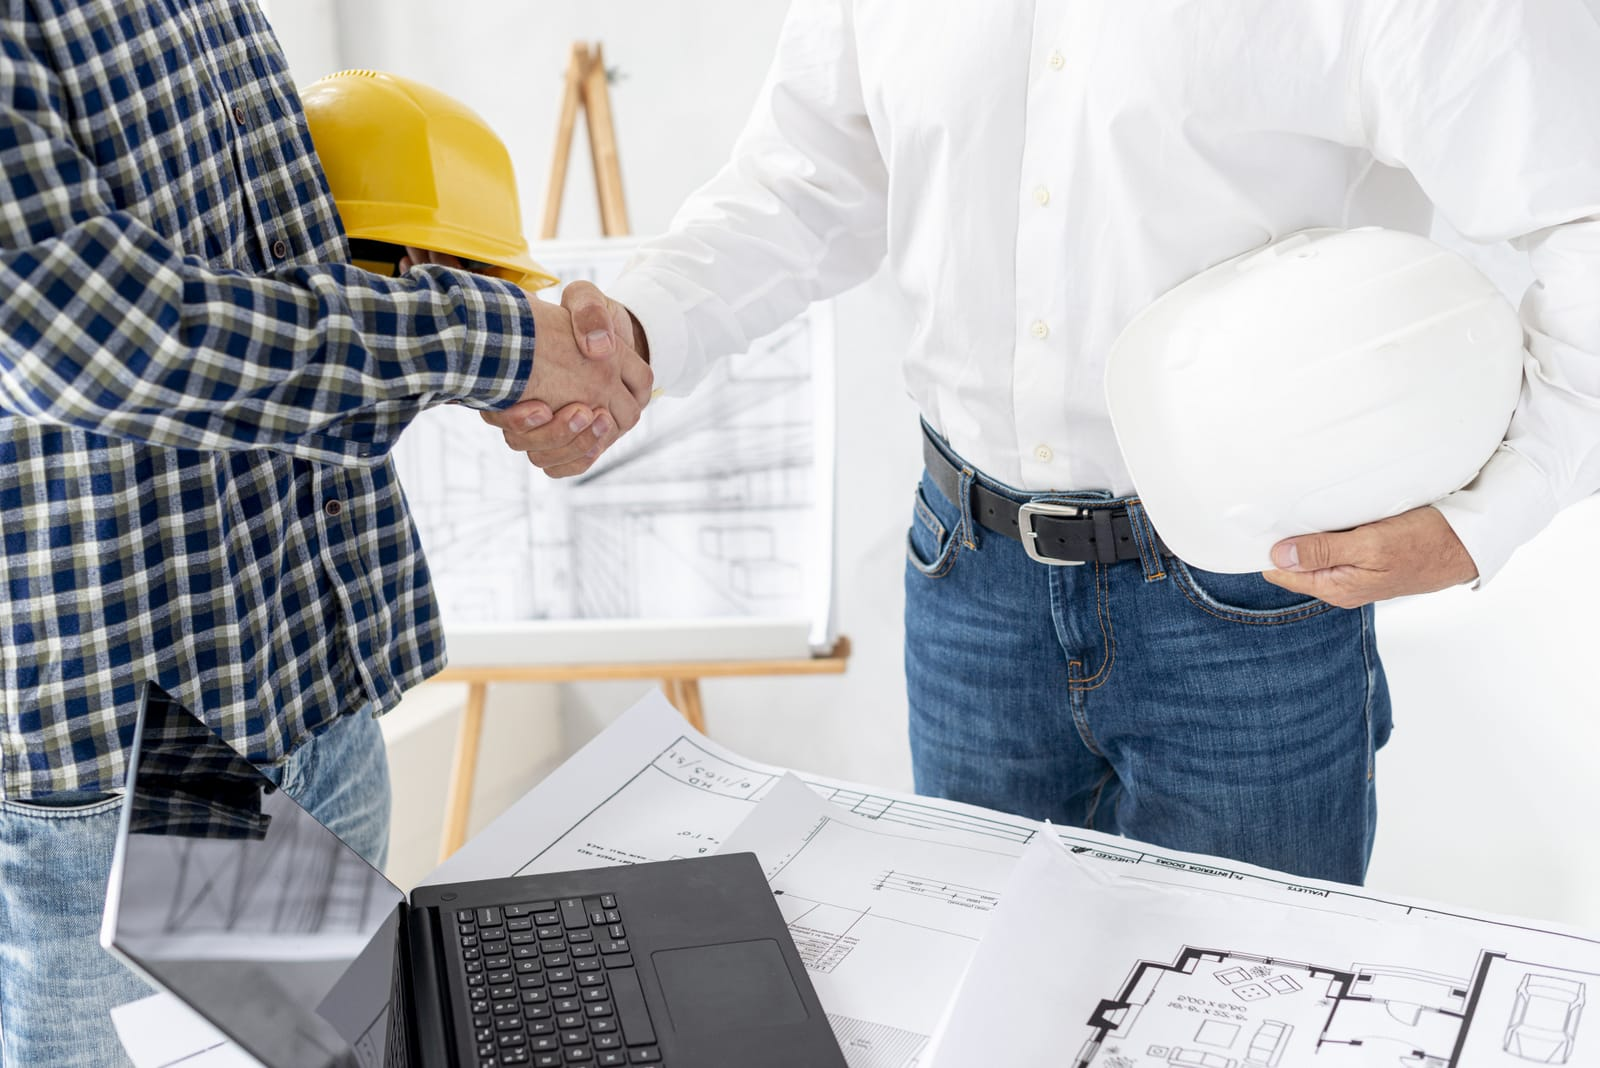 How to get an architecture job with no experience 4